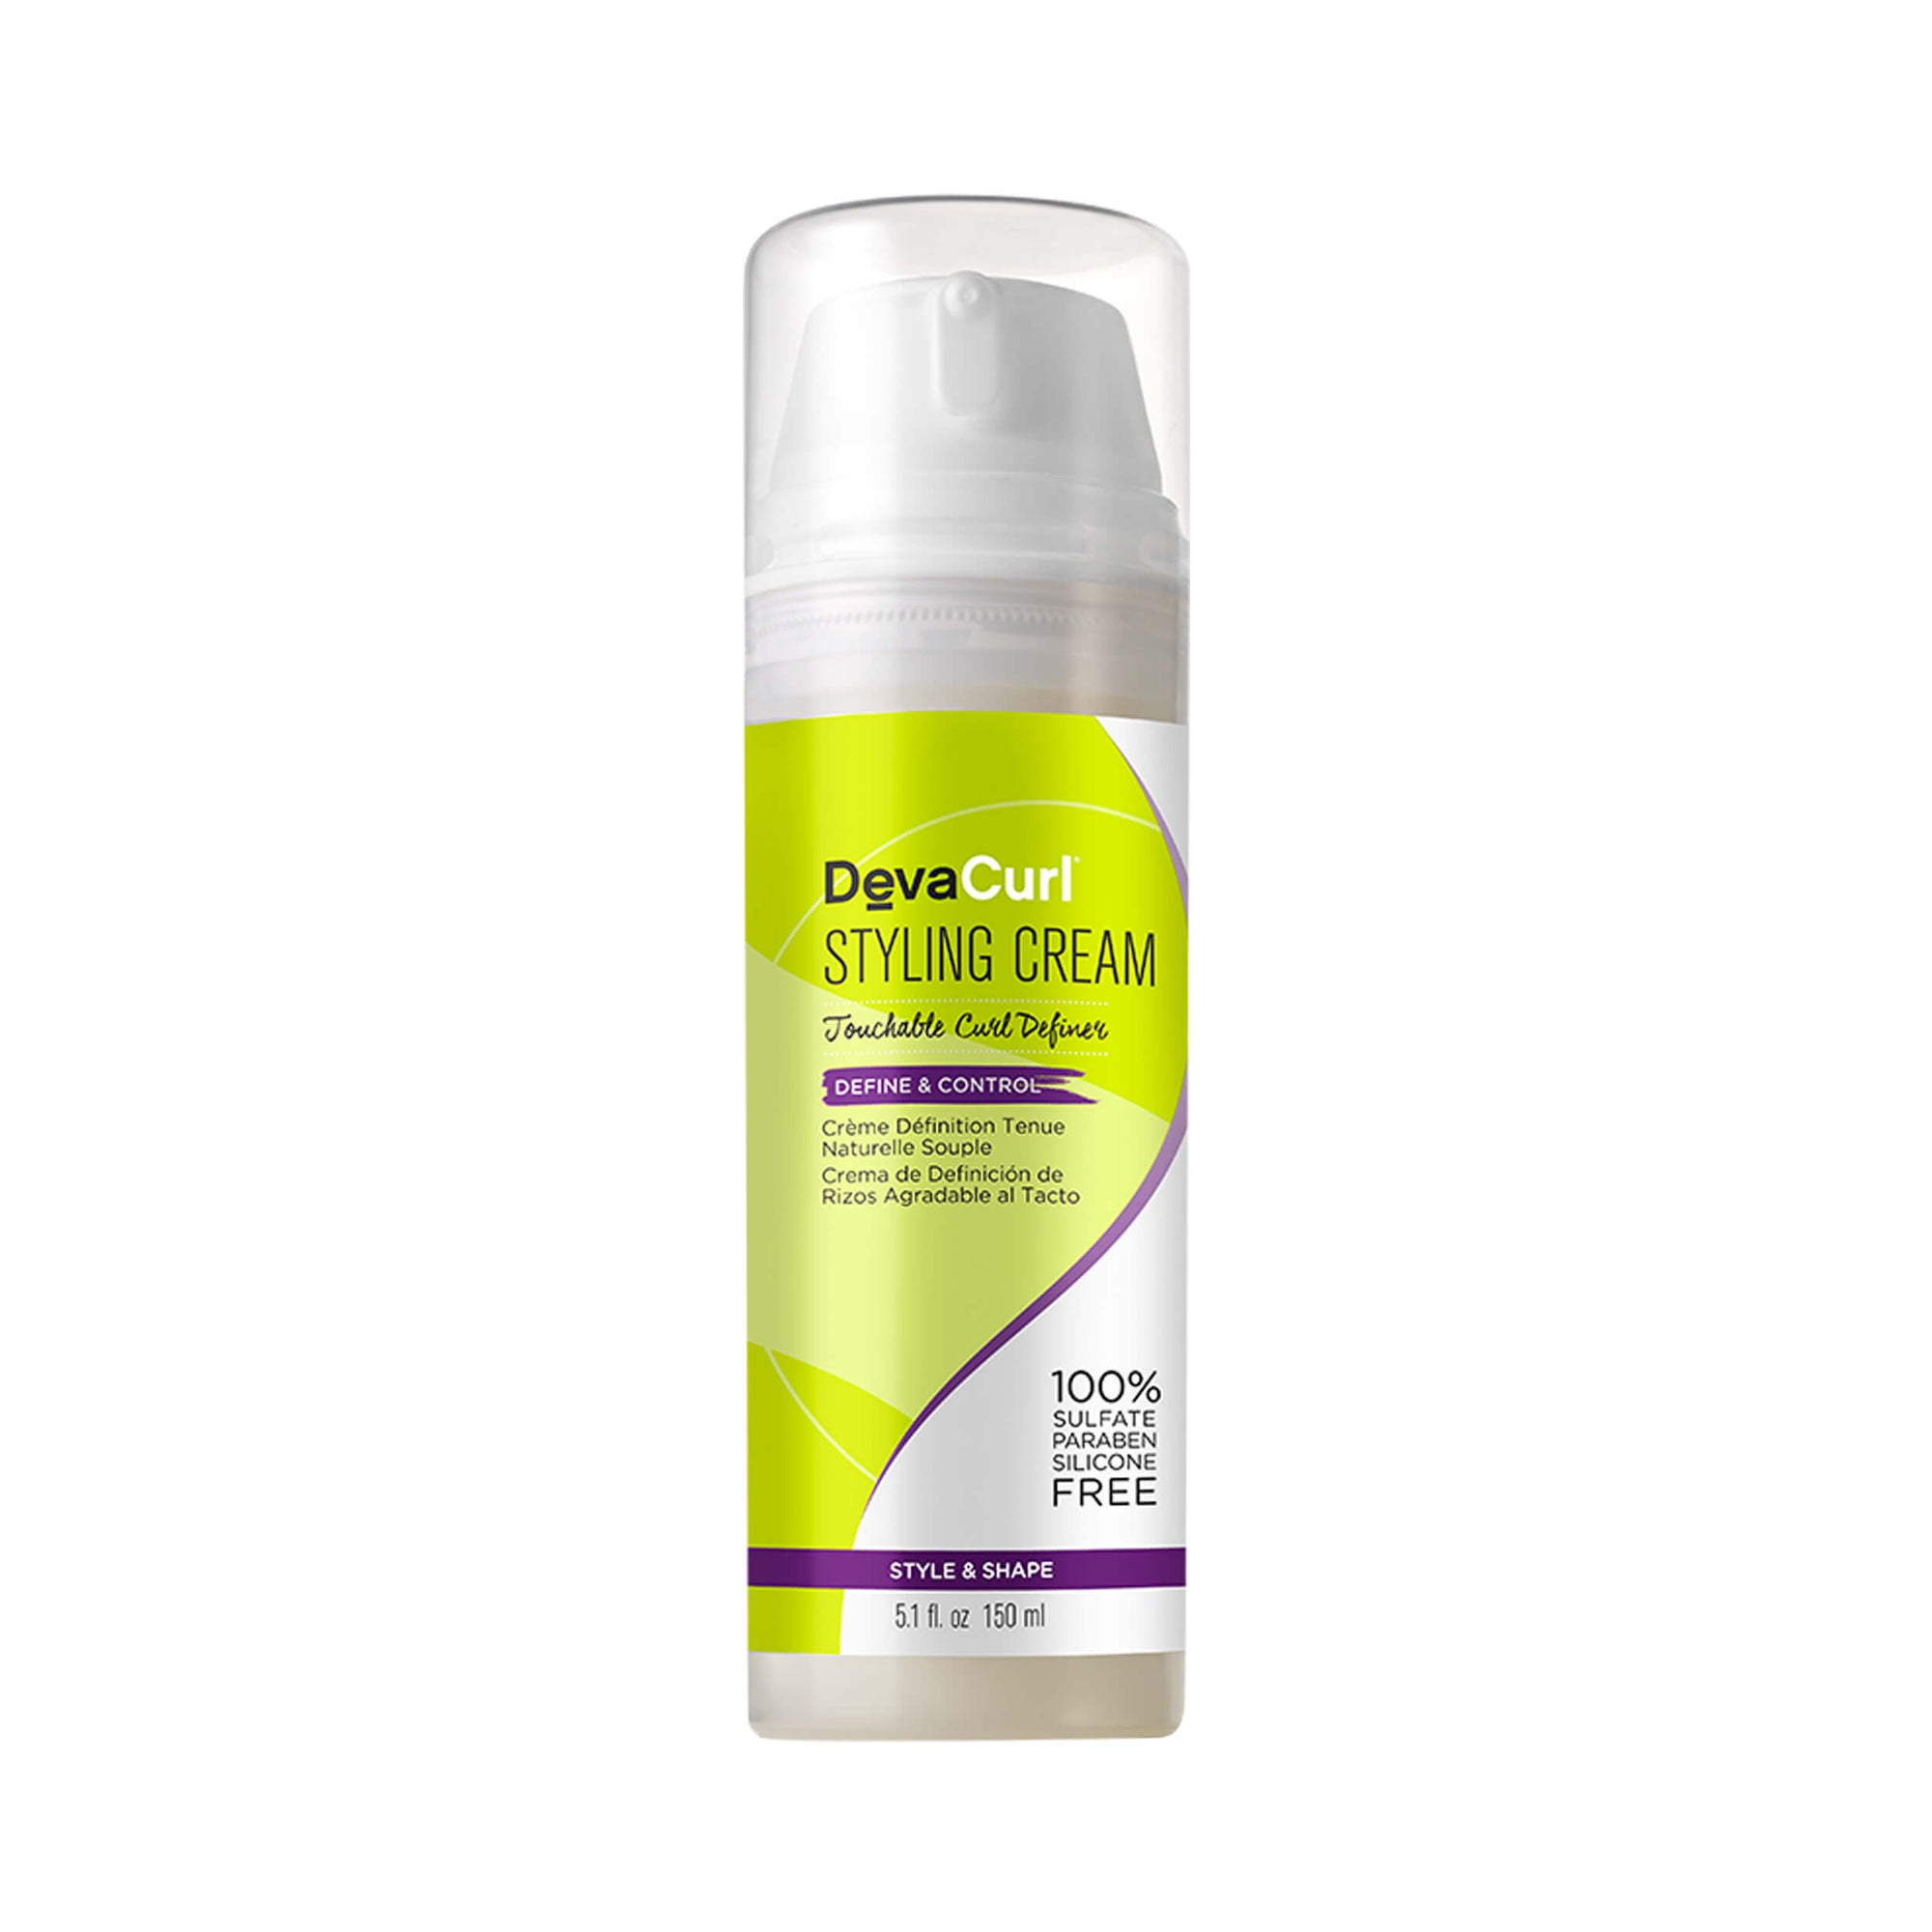 DevaCurl - Styling Cream Touchable Curl Definer Define & Control 150 mL